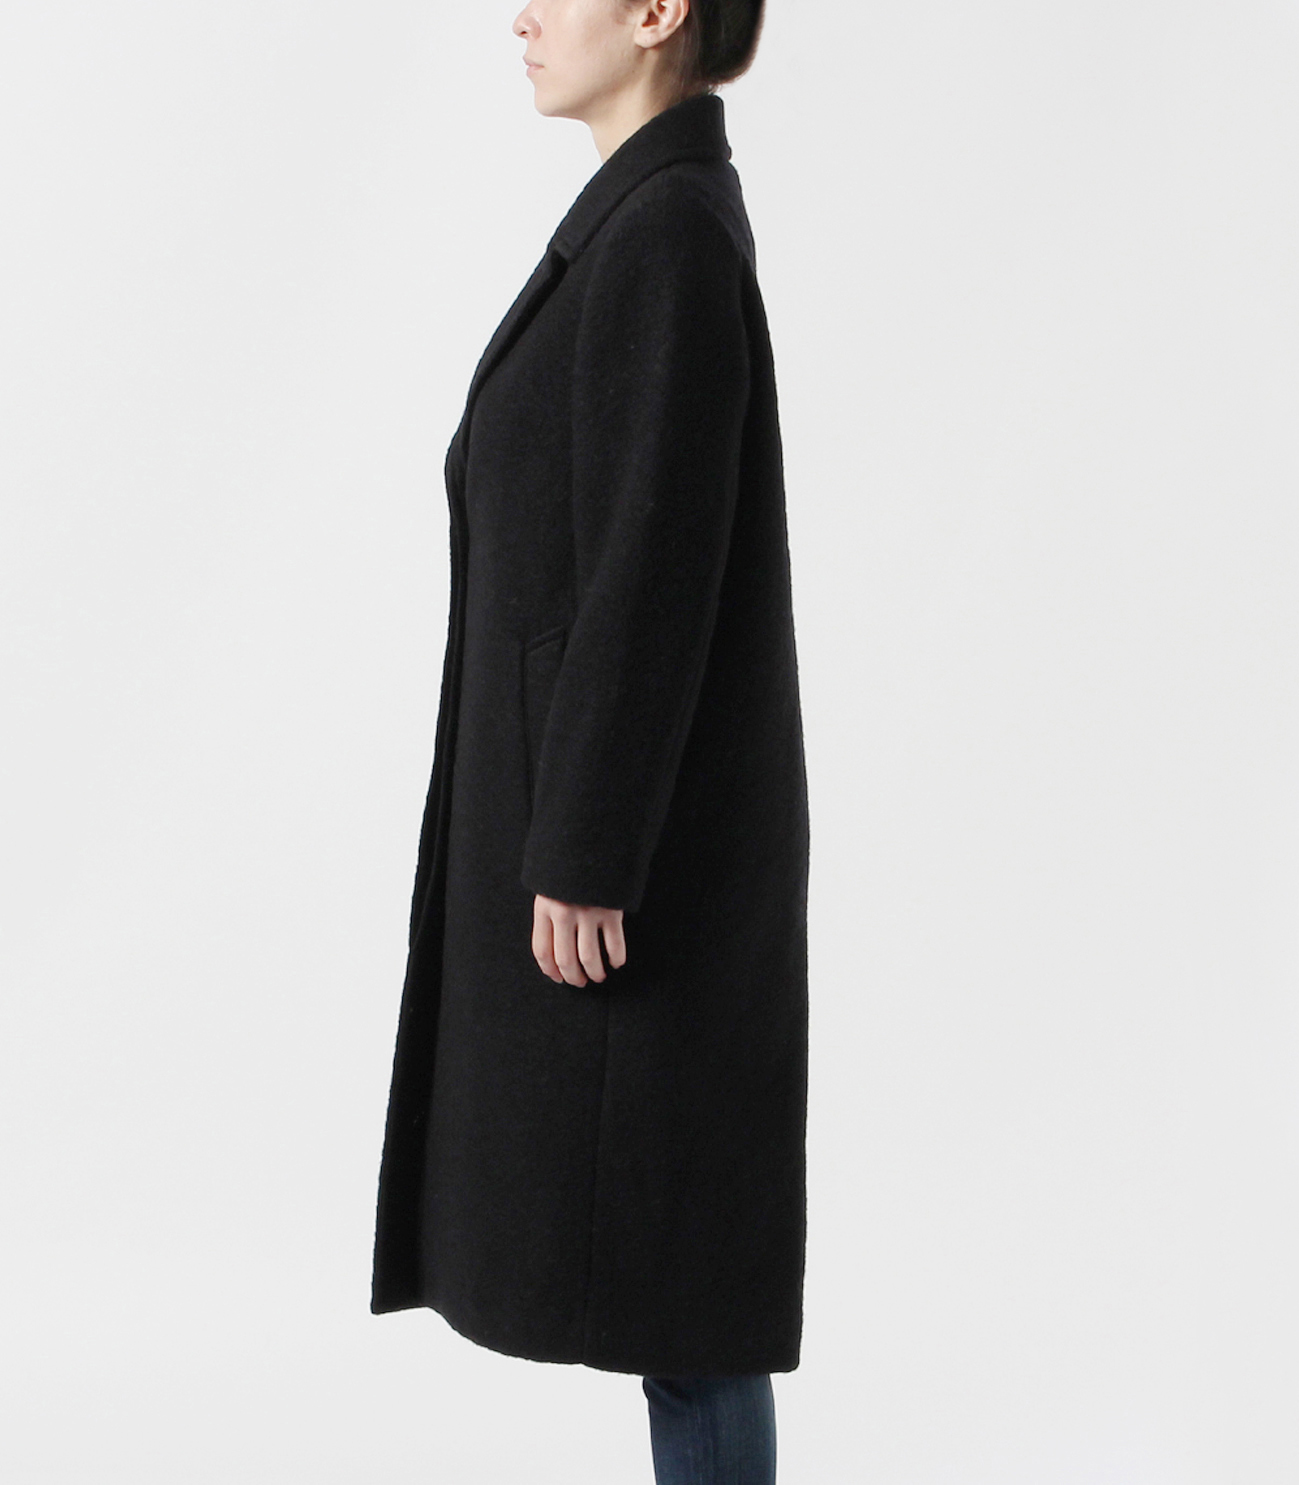 sliver knit chester coat 詳細画像 black 3